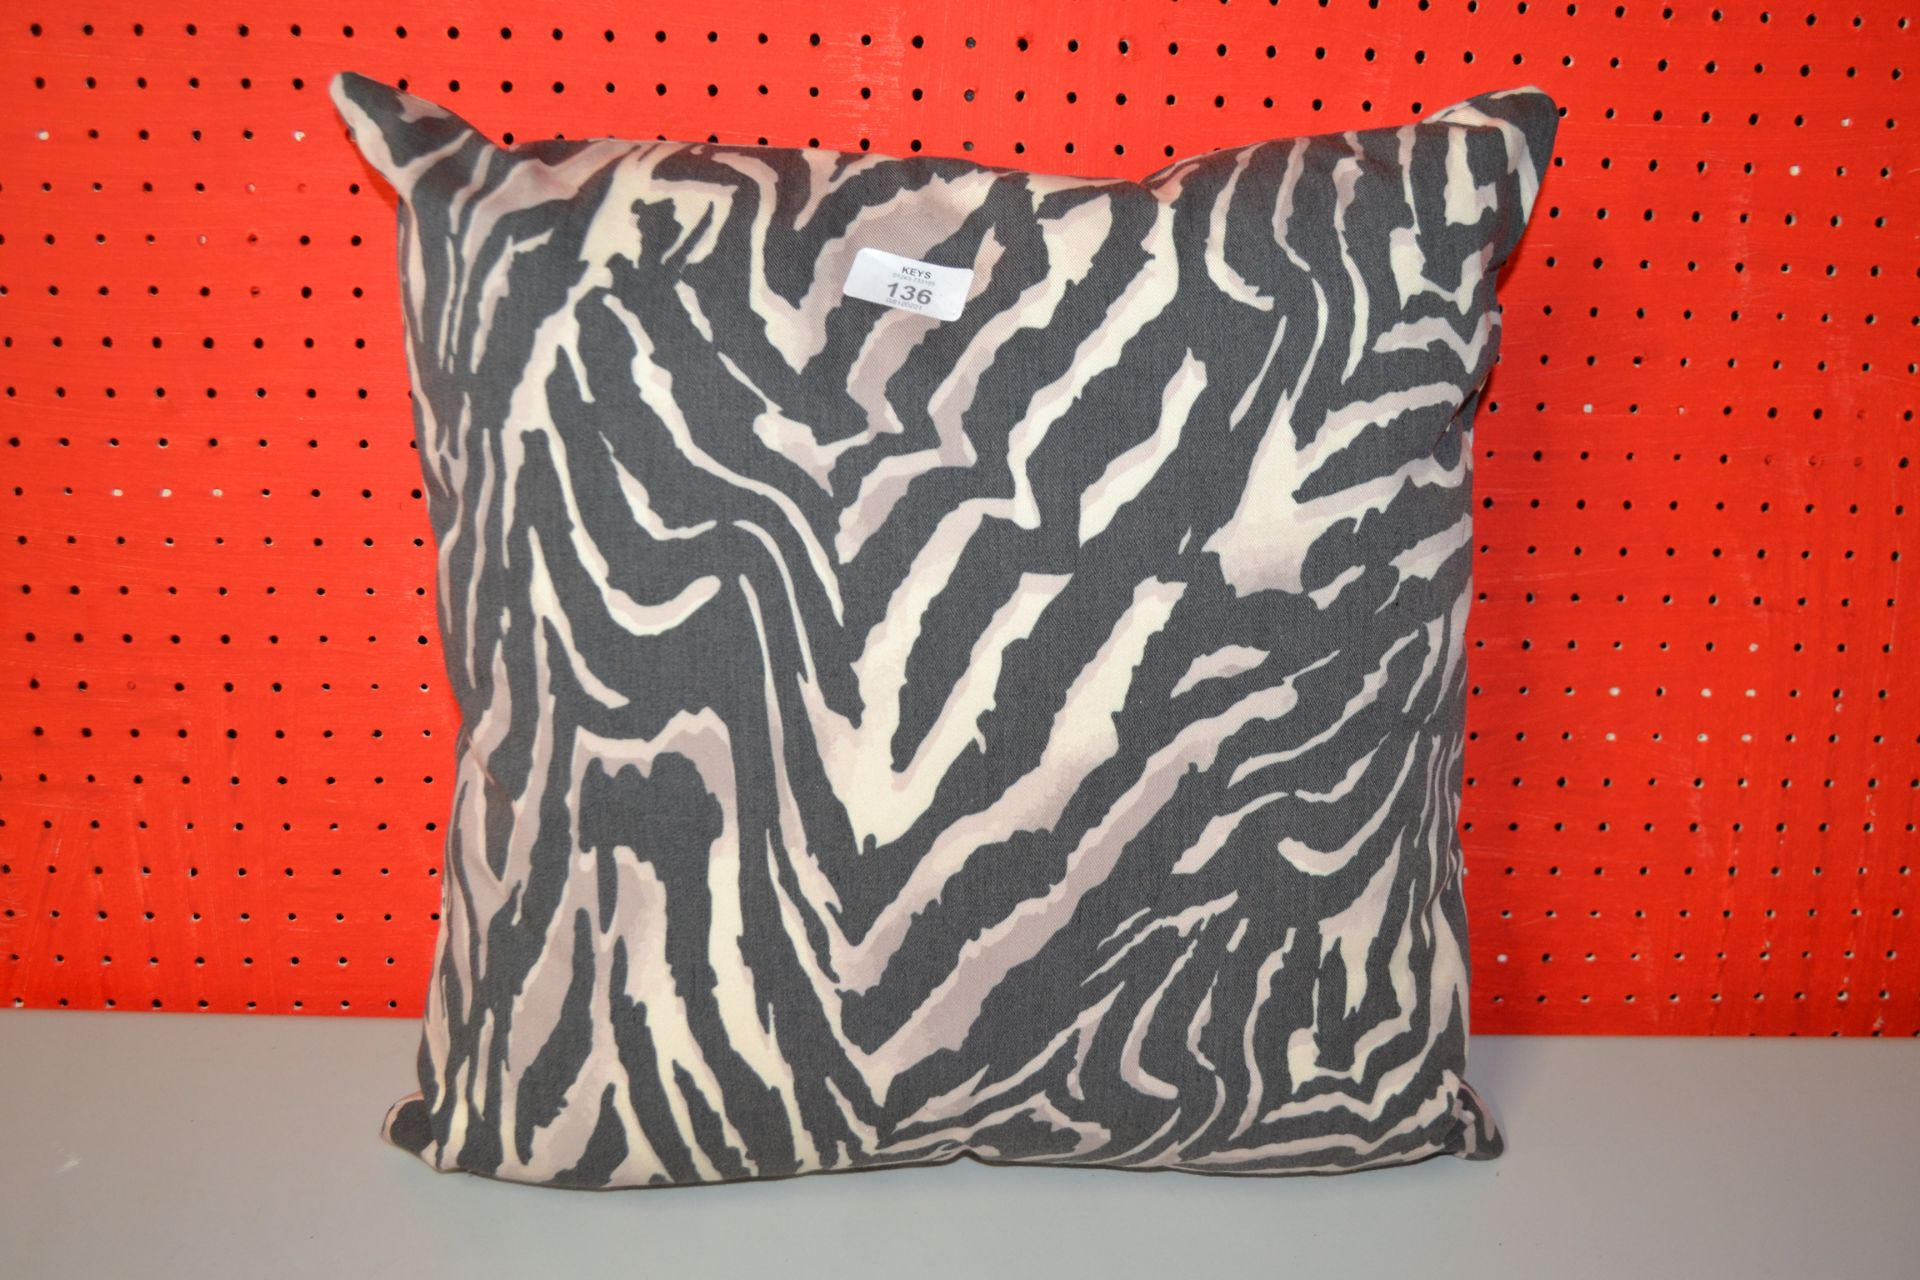 SQUARE PRINT PATTERN CUSHION APPROX 15 INCH